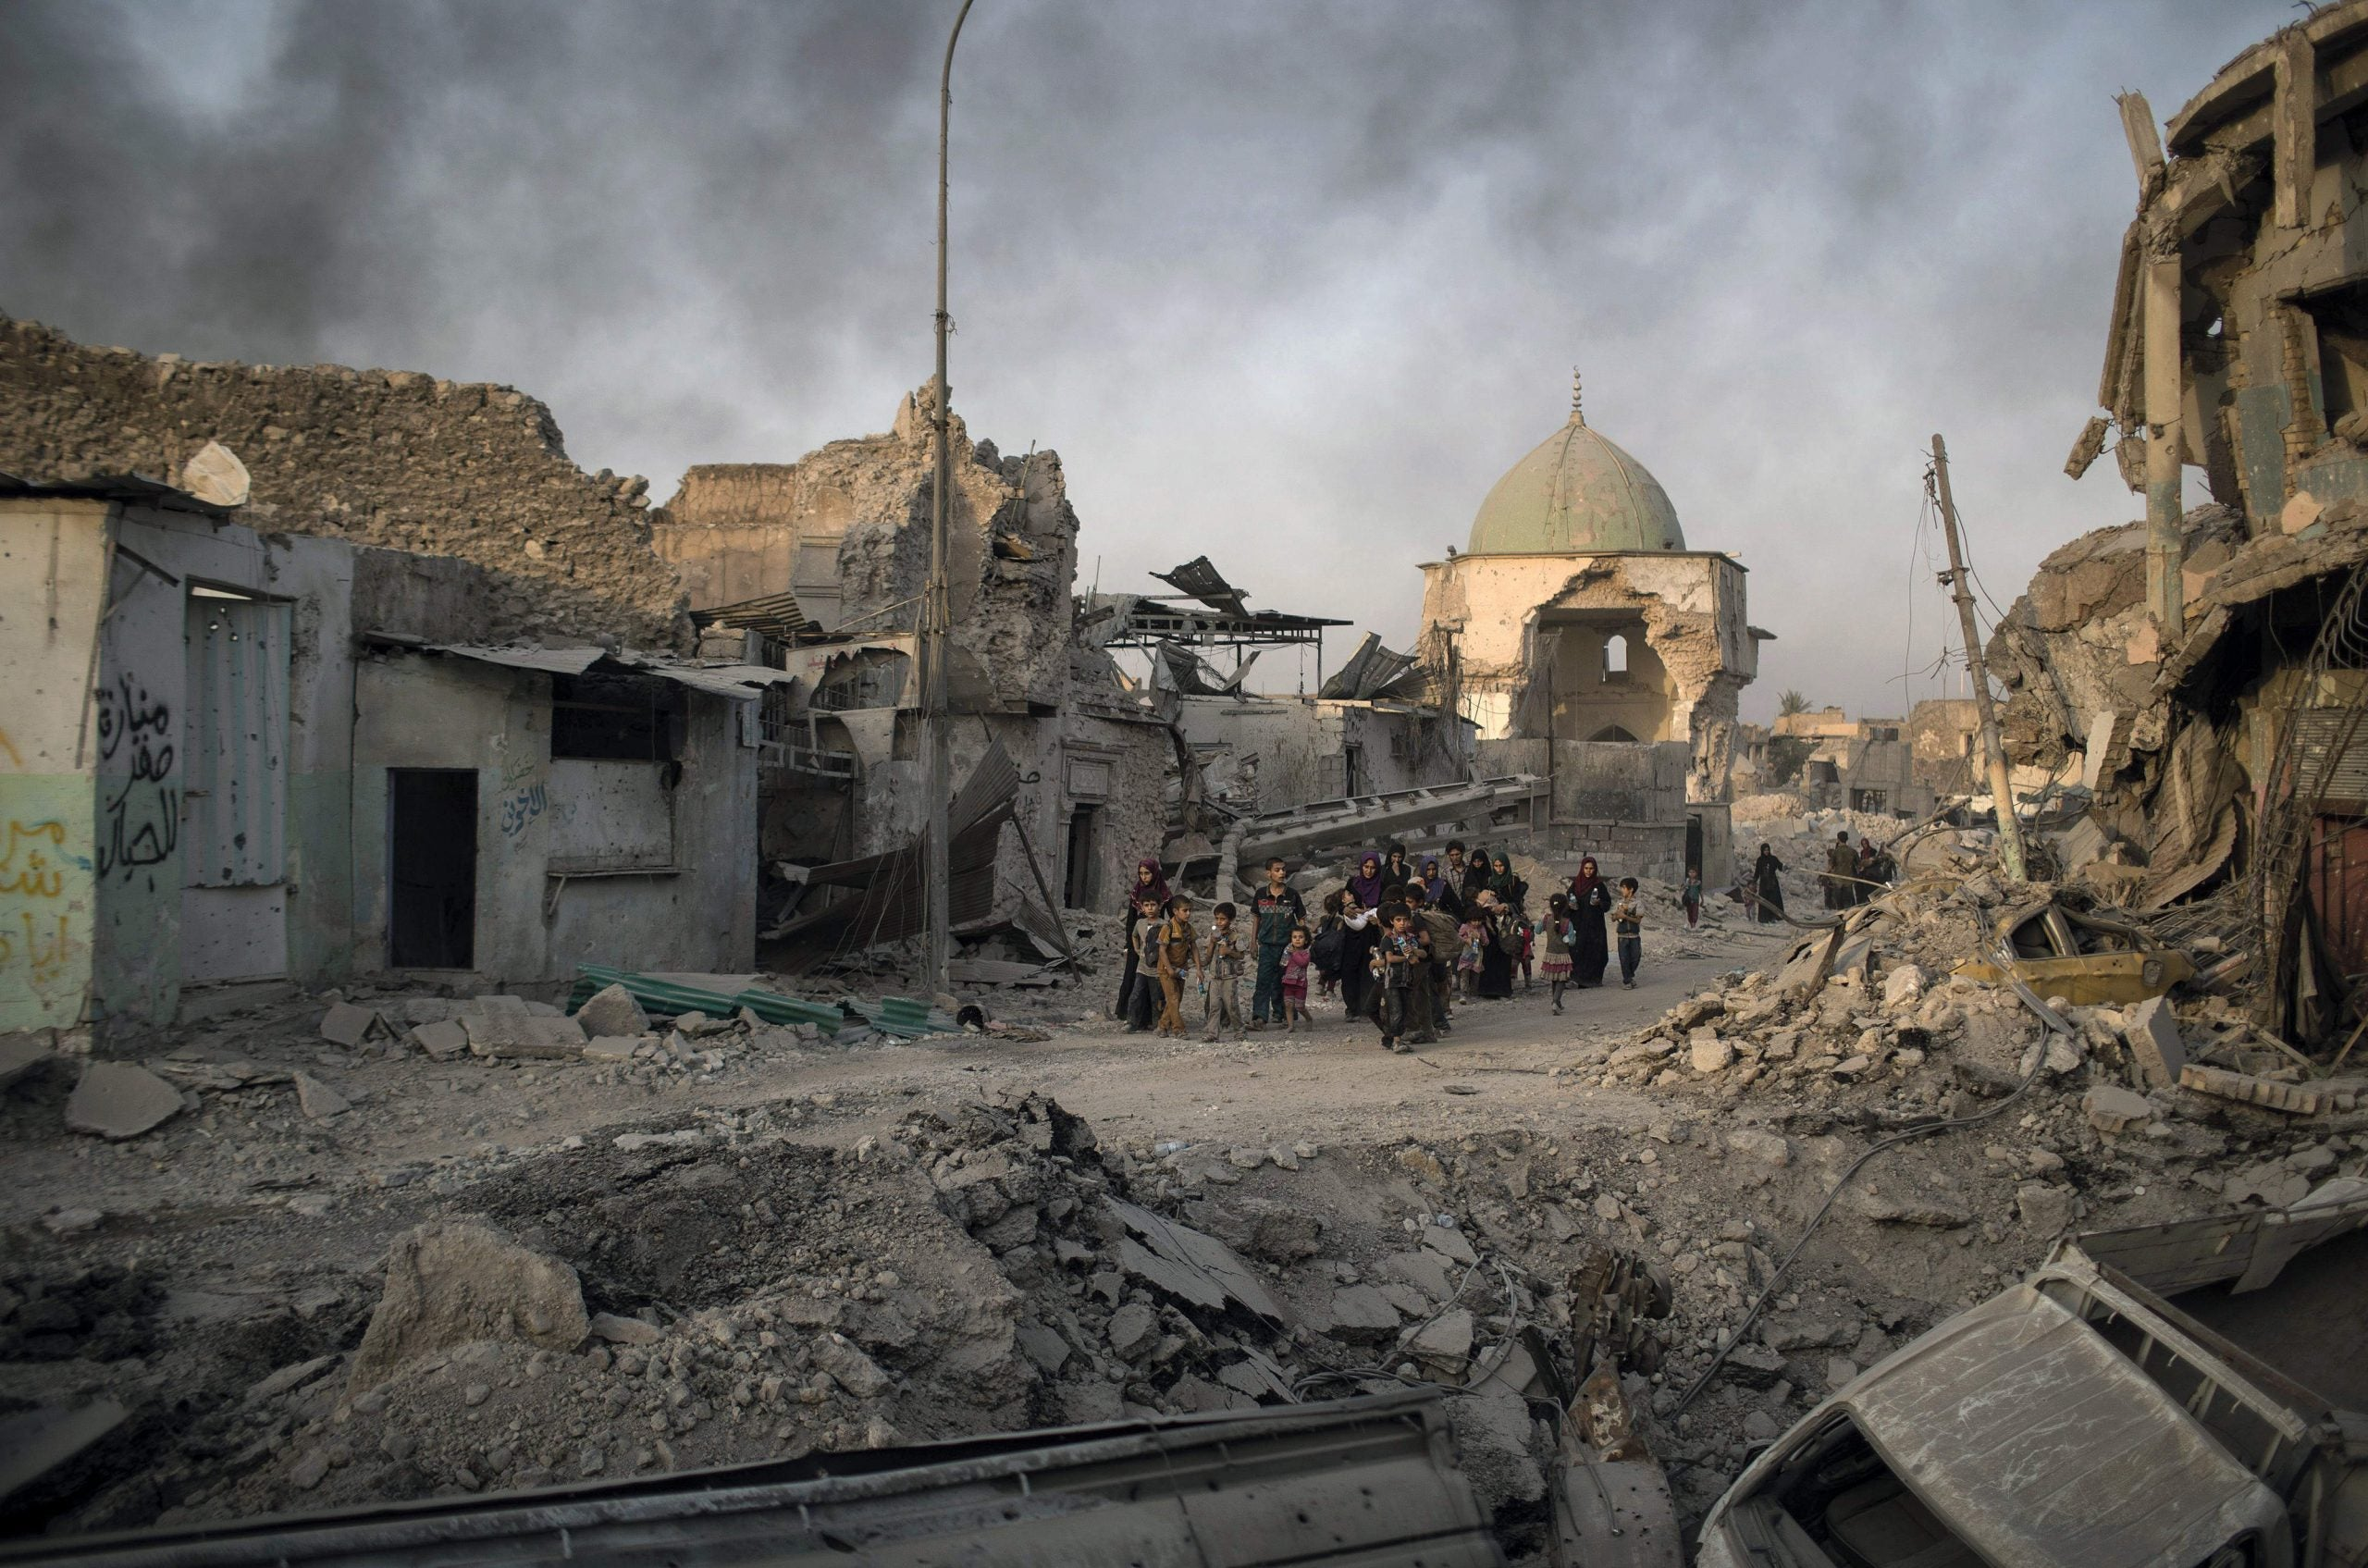 Mosul has fallen, but Islamic State is far from defeated